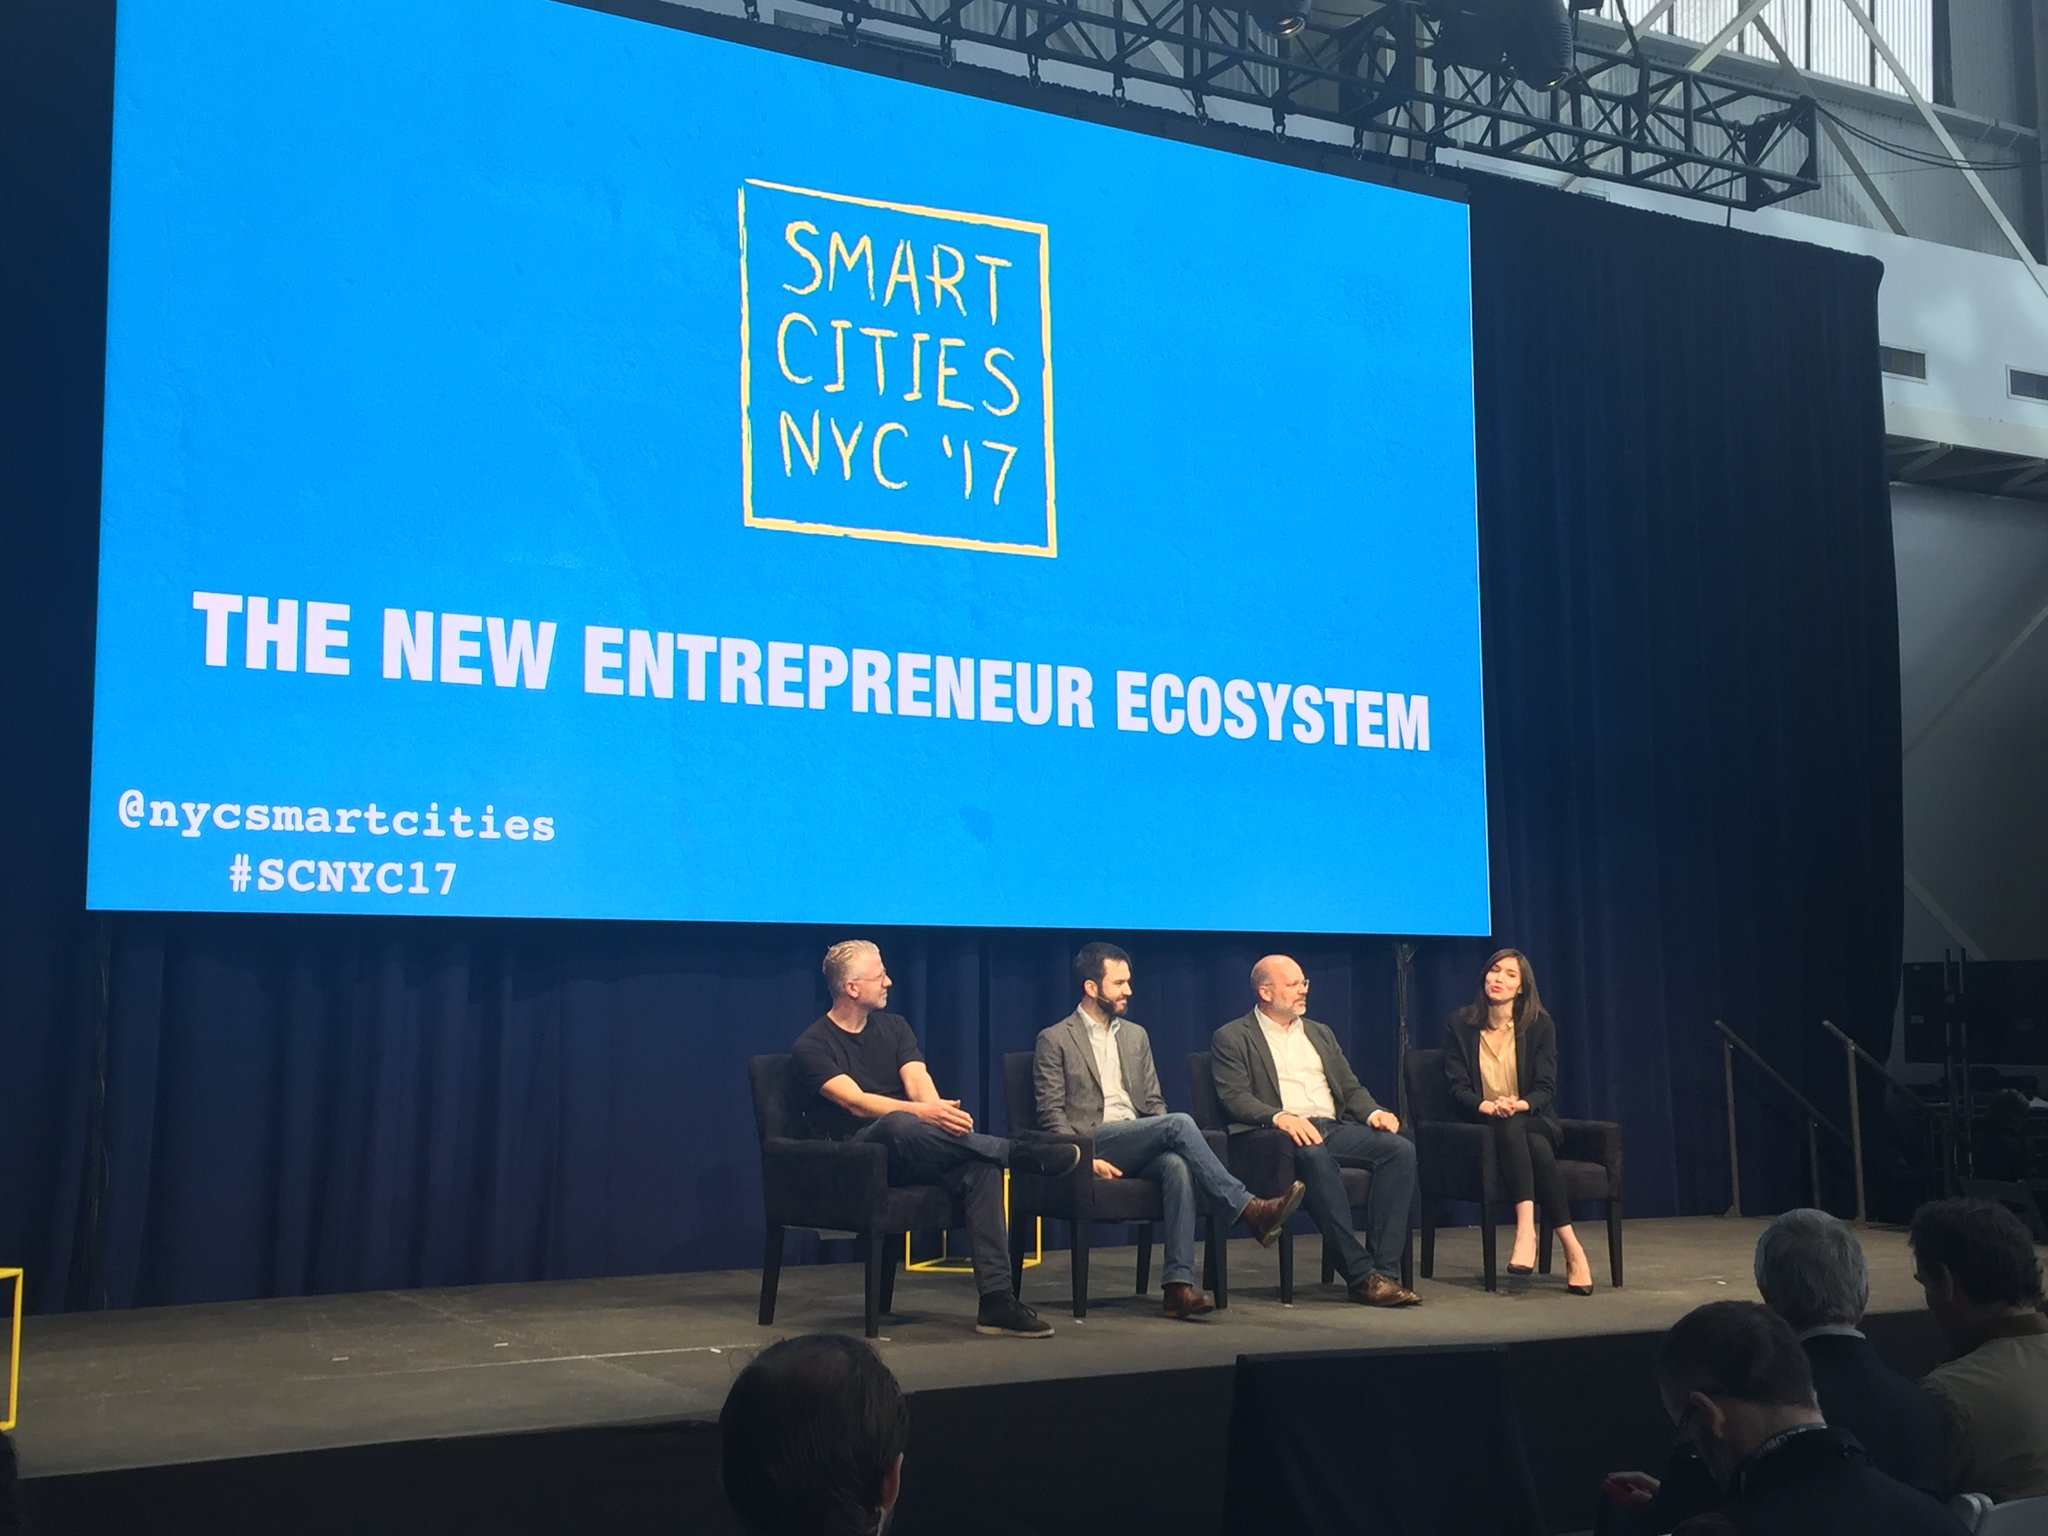 Dutch delegation attends Smart Cities NYC